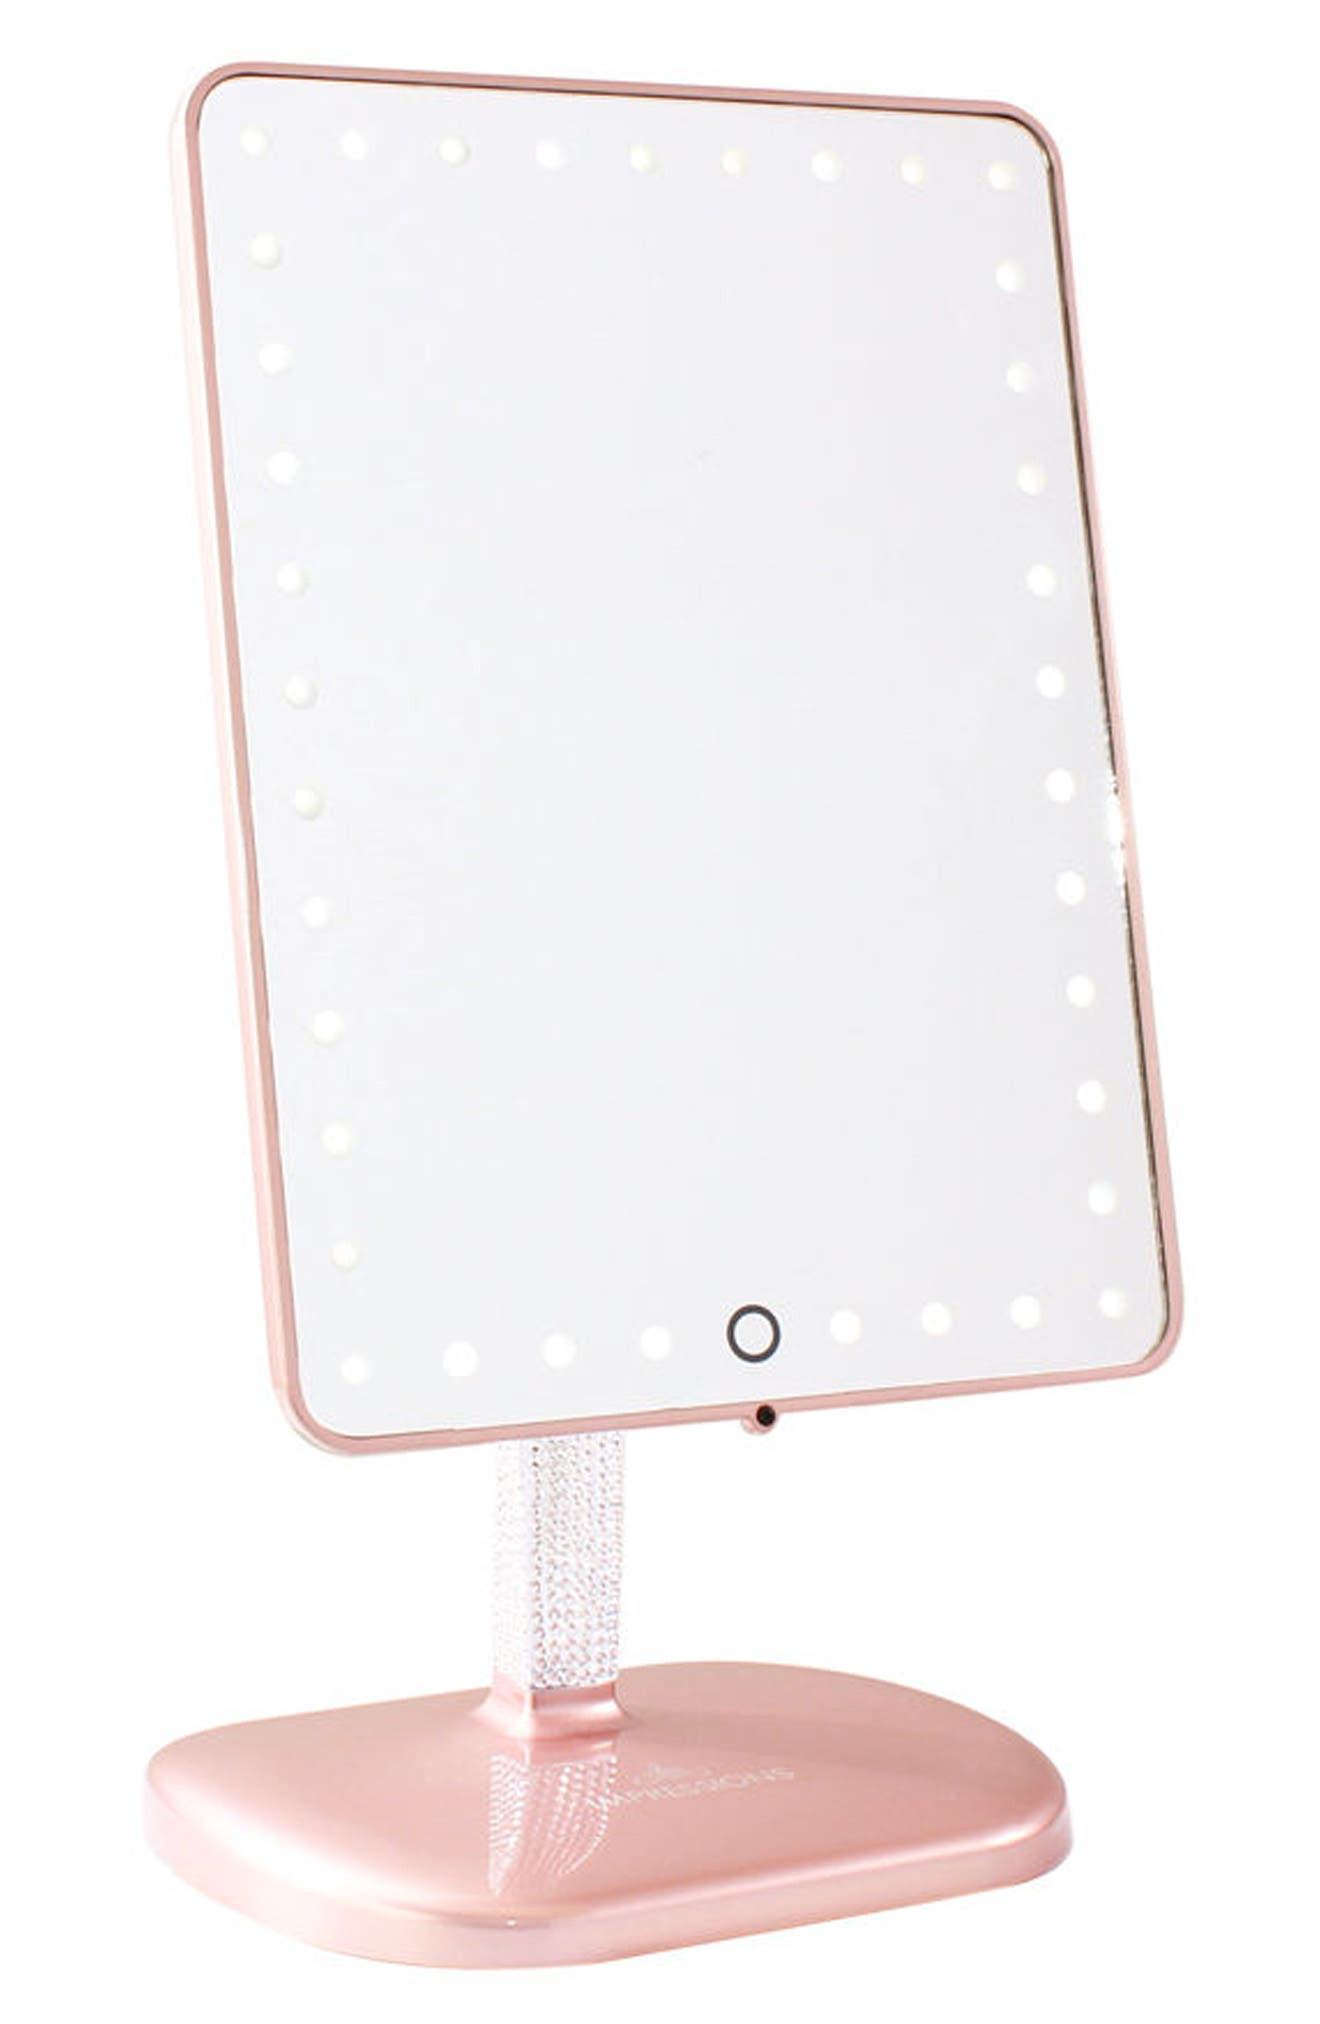 Impressions Vanity Co. Bling Touch Pro LED Makeup Mirror with Bluetooth® Audio & Speakerphone